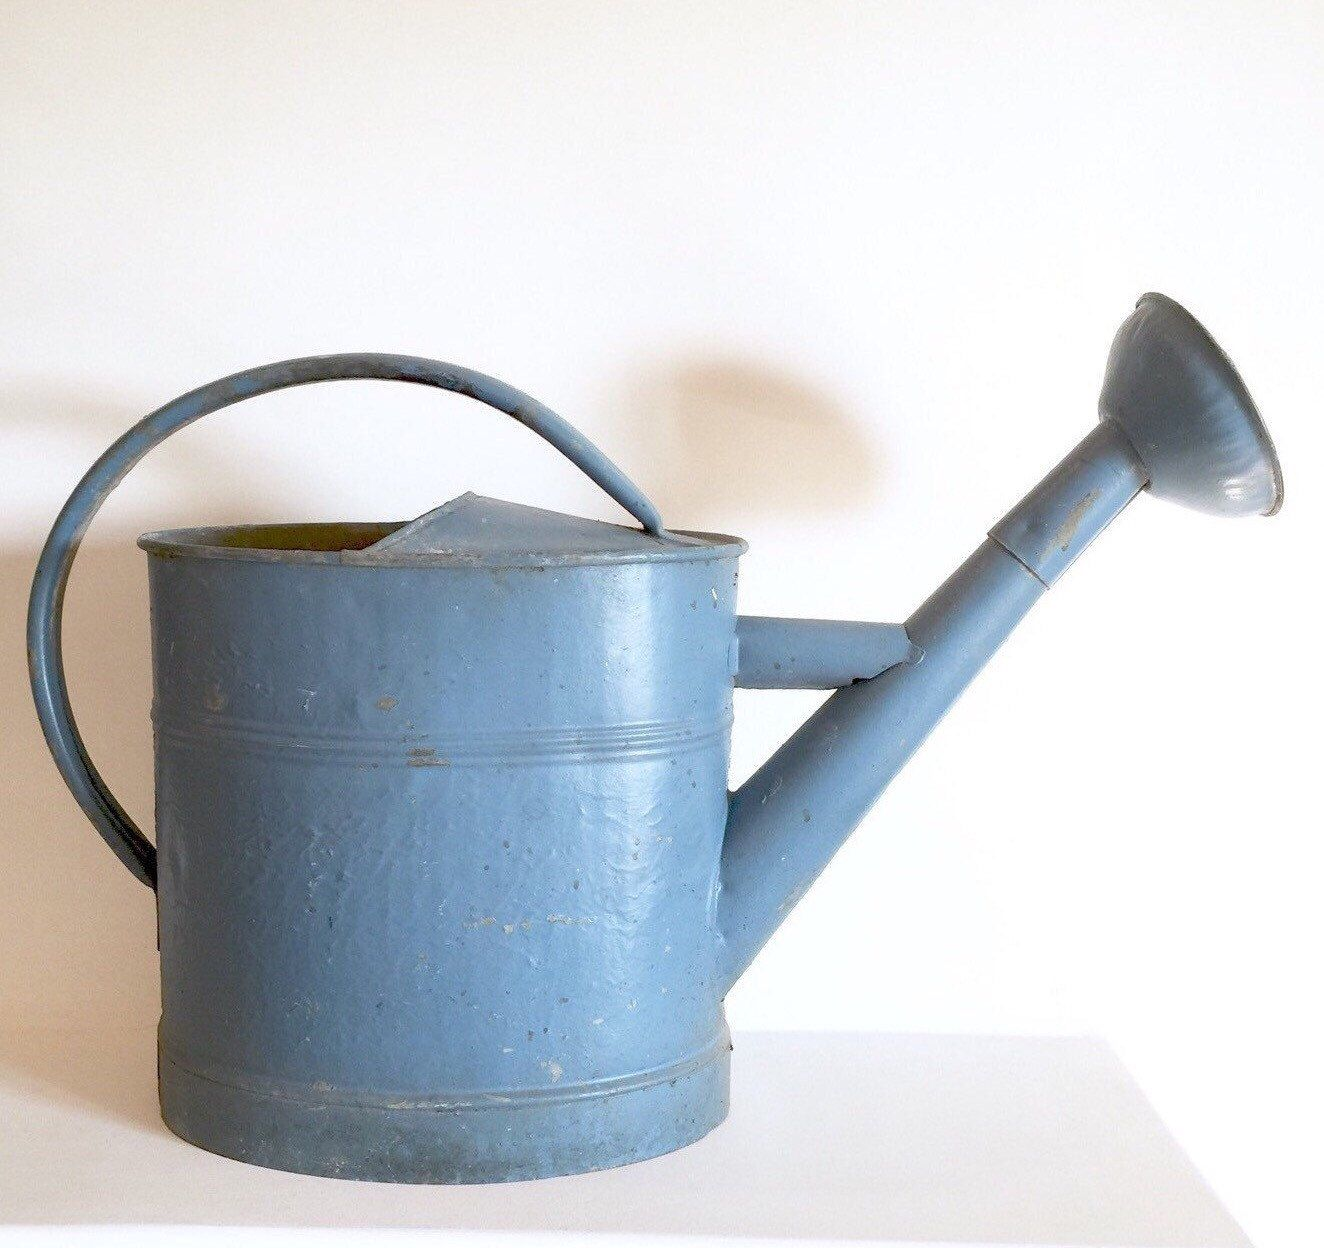 Antique French Watering Can - Vintage Rustic Painted Zinc Watering Can - French Blue Watering Can - French Garden by LaVieEnPastis on Etsy https://www.etsy.com/listing/257742824/antique-french-watering-can-vintage